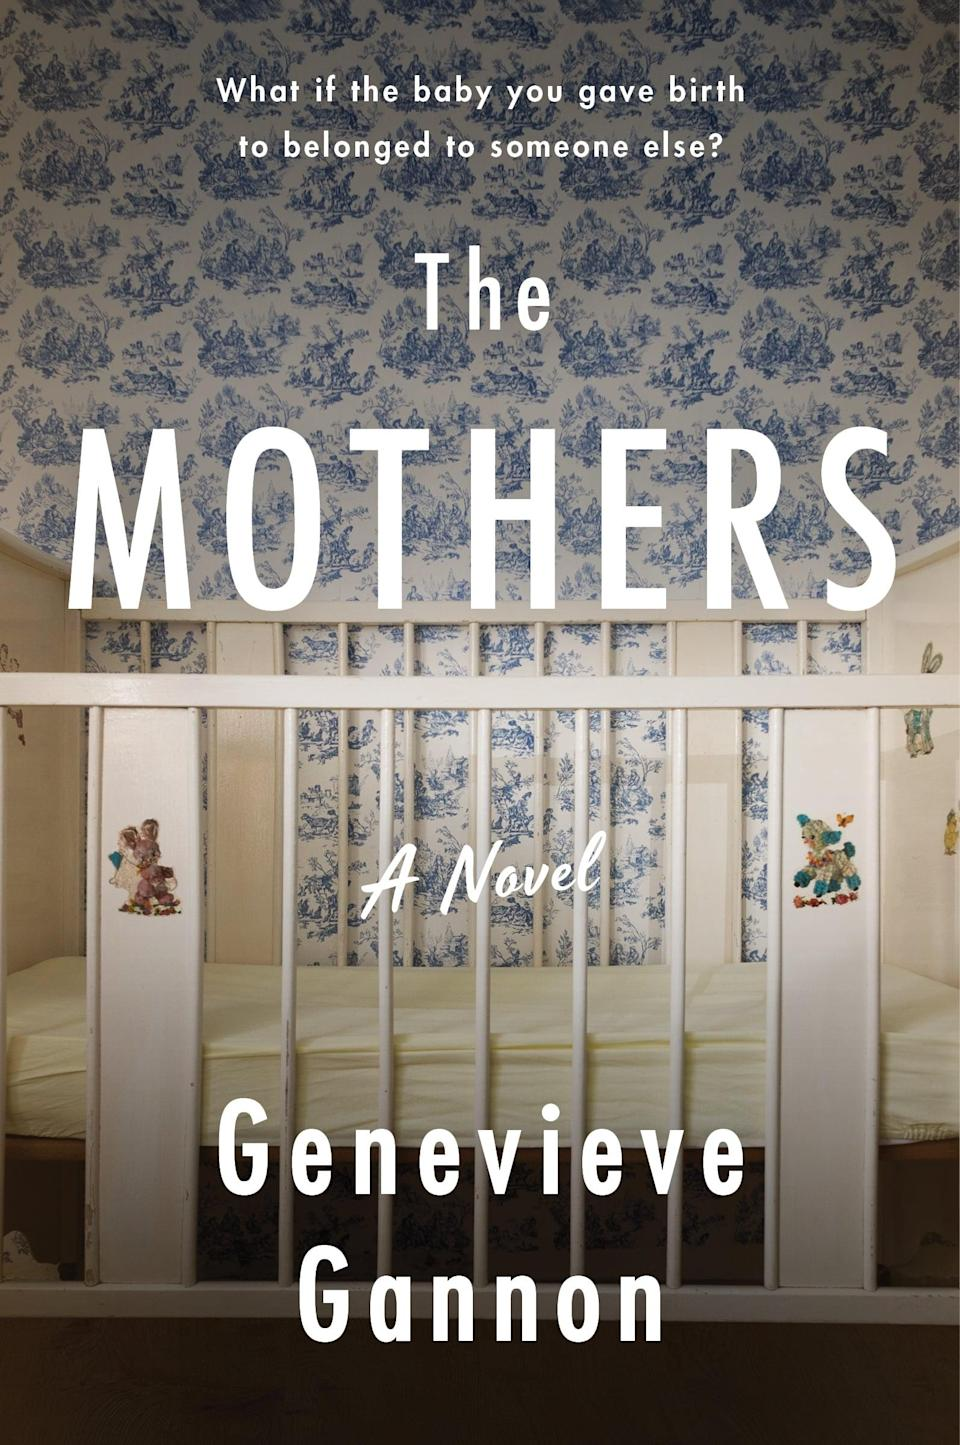 <p>Inspired by a real-life incident, <span><strong>The Mothers</strong></span> by Genevieve Gannon is a heartbreaking story about two mothers caught in an unthinkable situation. Due to a mix-up at an IVF lab, one woman ends up impregnated with the other's embryo and gives birth to a healthy baby boy. When the mistake comes to light one year later, the baby's biological mother is faced with the terrible choice between suing for custody or allowing her son to remain with the only parents he has ever known.</p> <p><em>Out May 11</em></p>